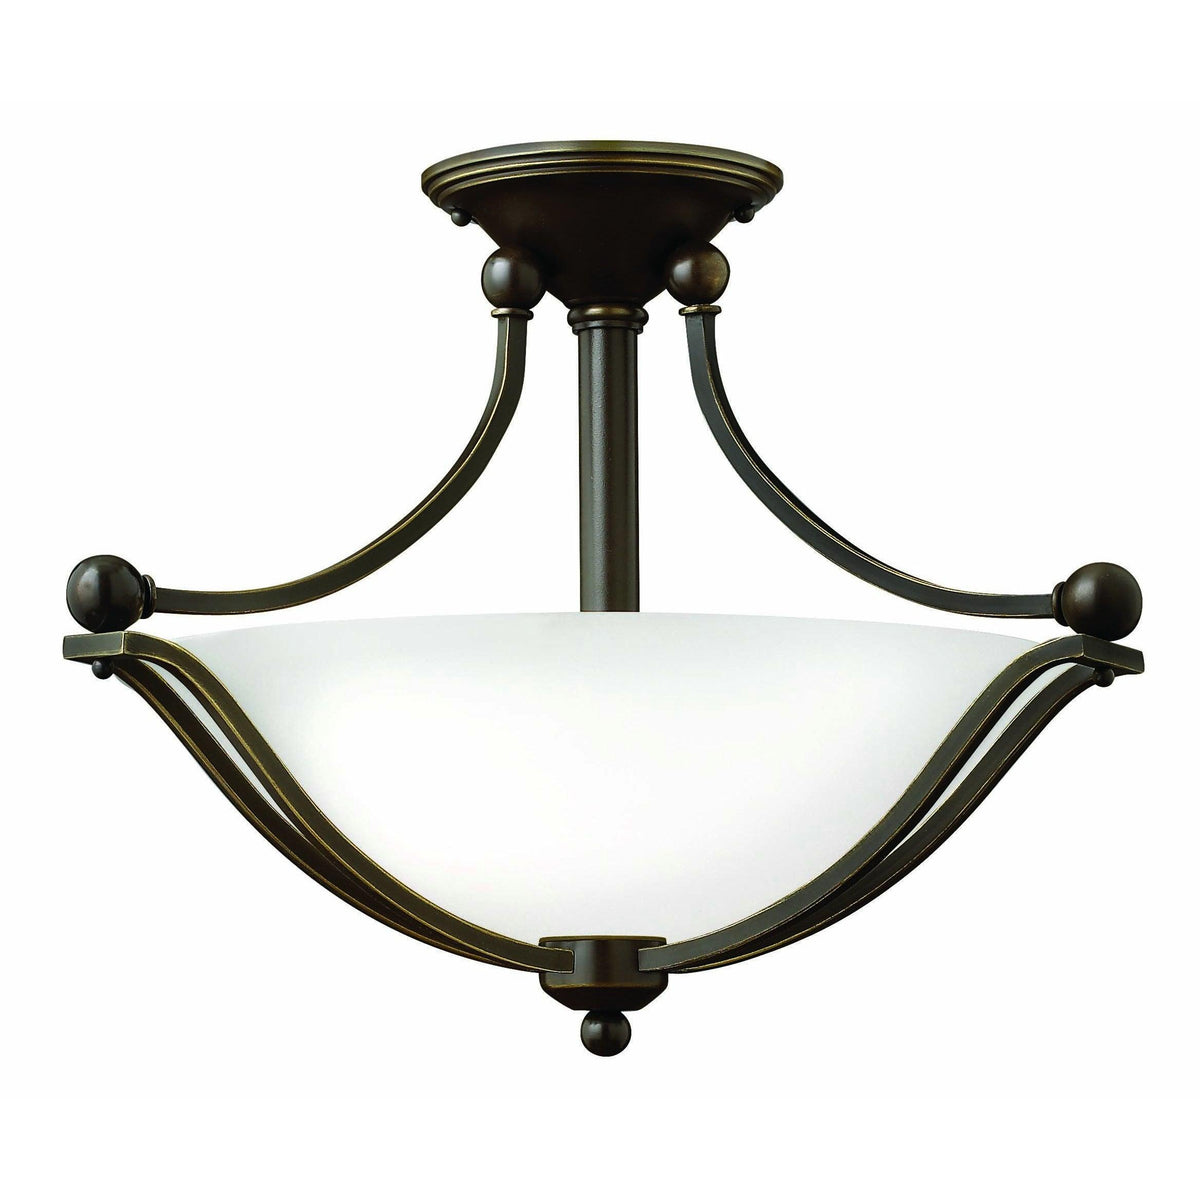 Hinkley Canada - 4651OB-OP-LED - LED Semi-Flush Mount - Bolla - Olde Bronze With Opal Glass